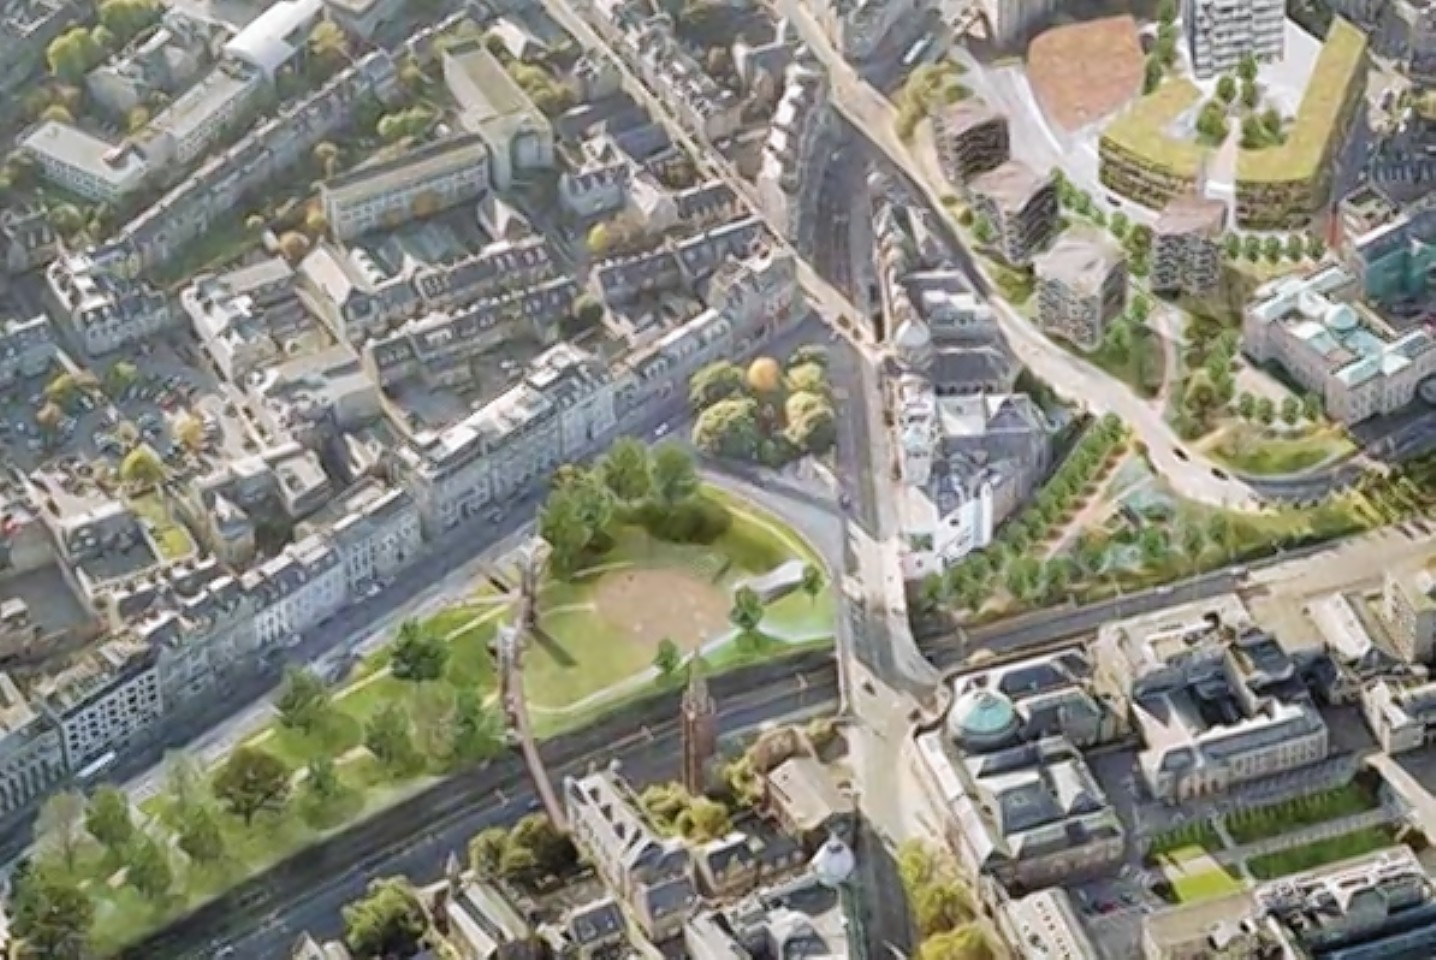 Union Terrace Gardens could be expanded  under the plans